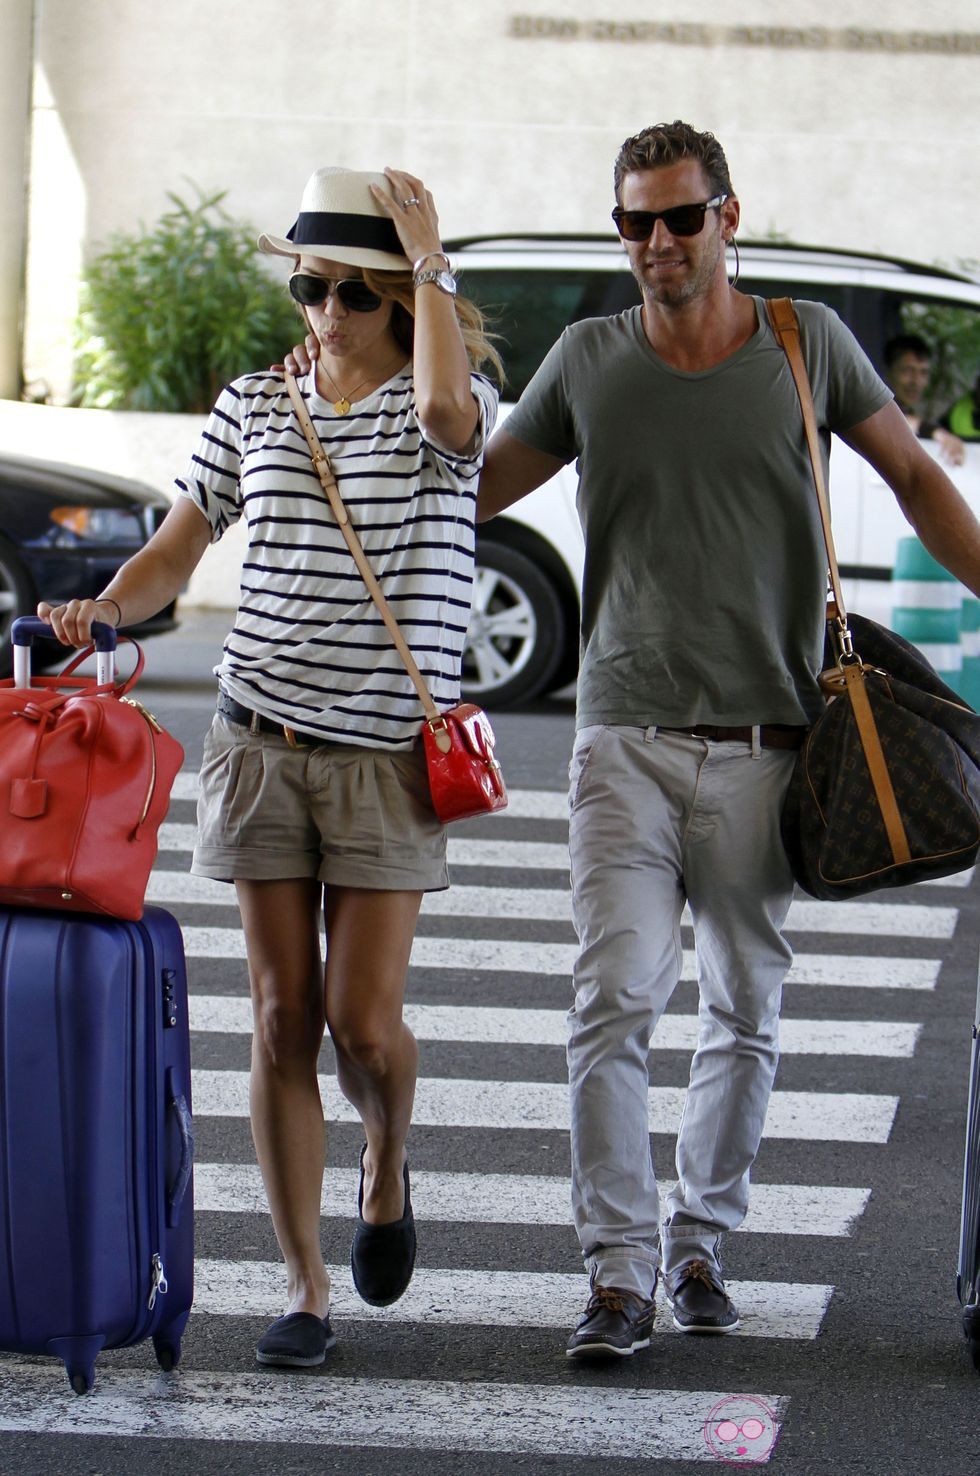 Celebrity Sighting In Palma de Mallorca - July 2, 2012